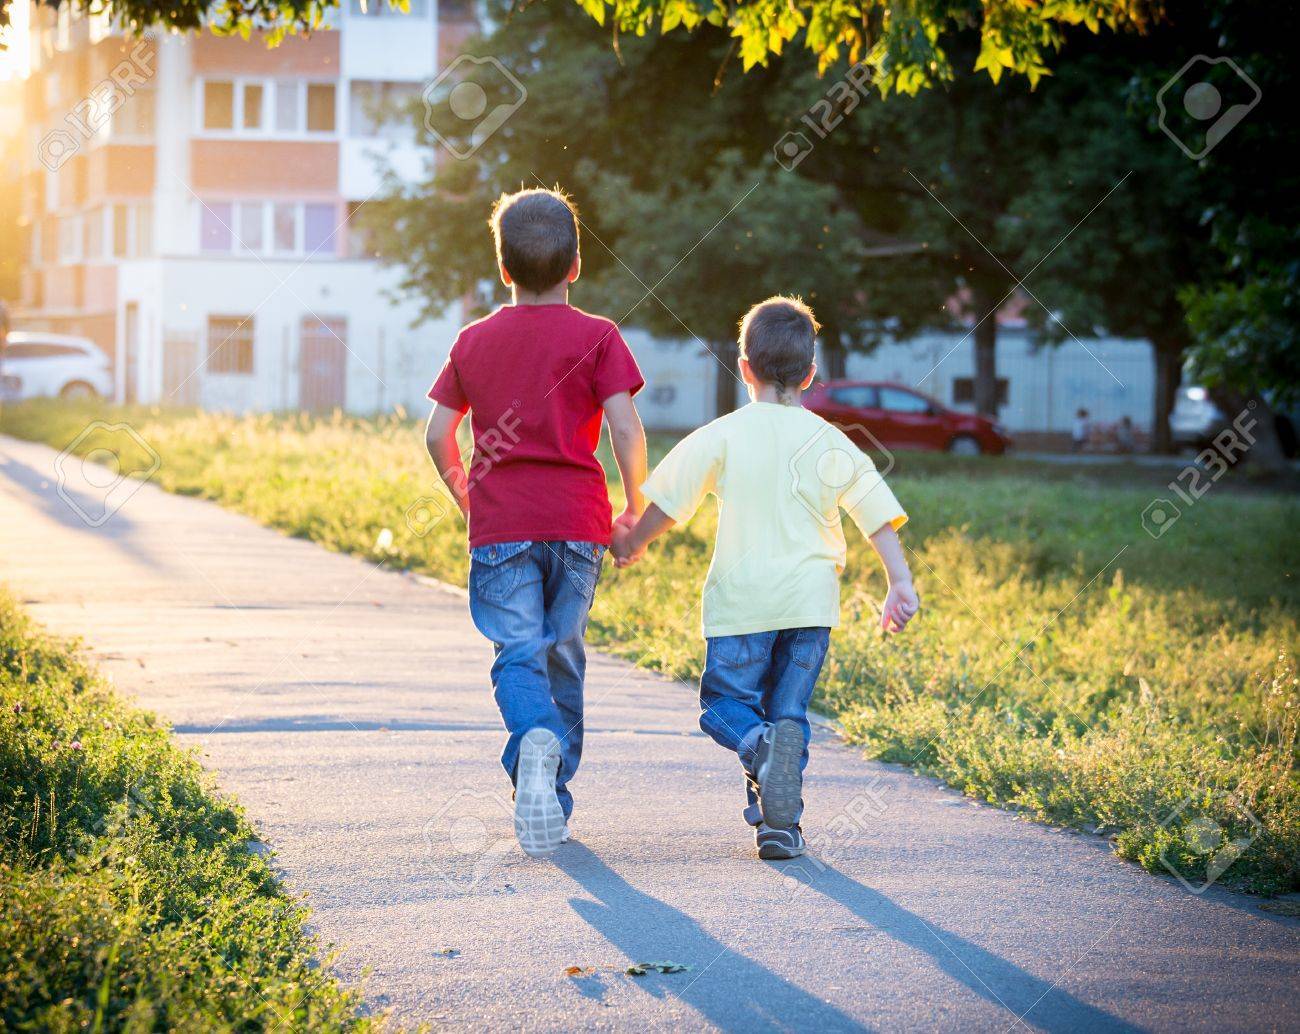 Two Boys Running Together On Street With Sun Back Light Stock Photo,  Picture And Royalty Free Image. Image 62710991.